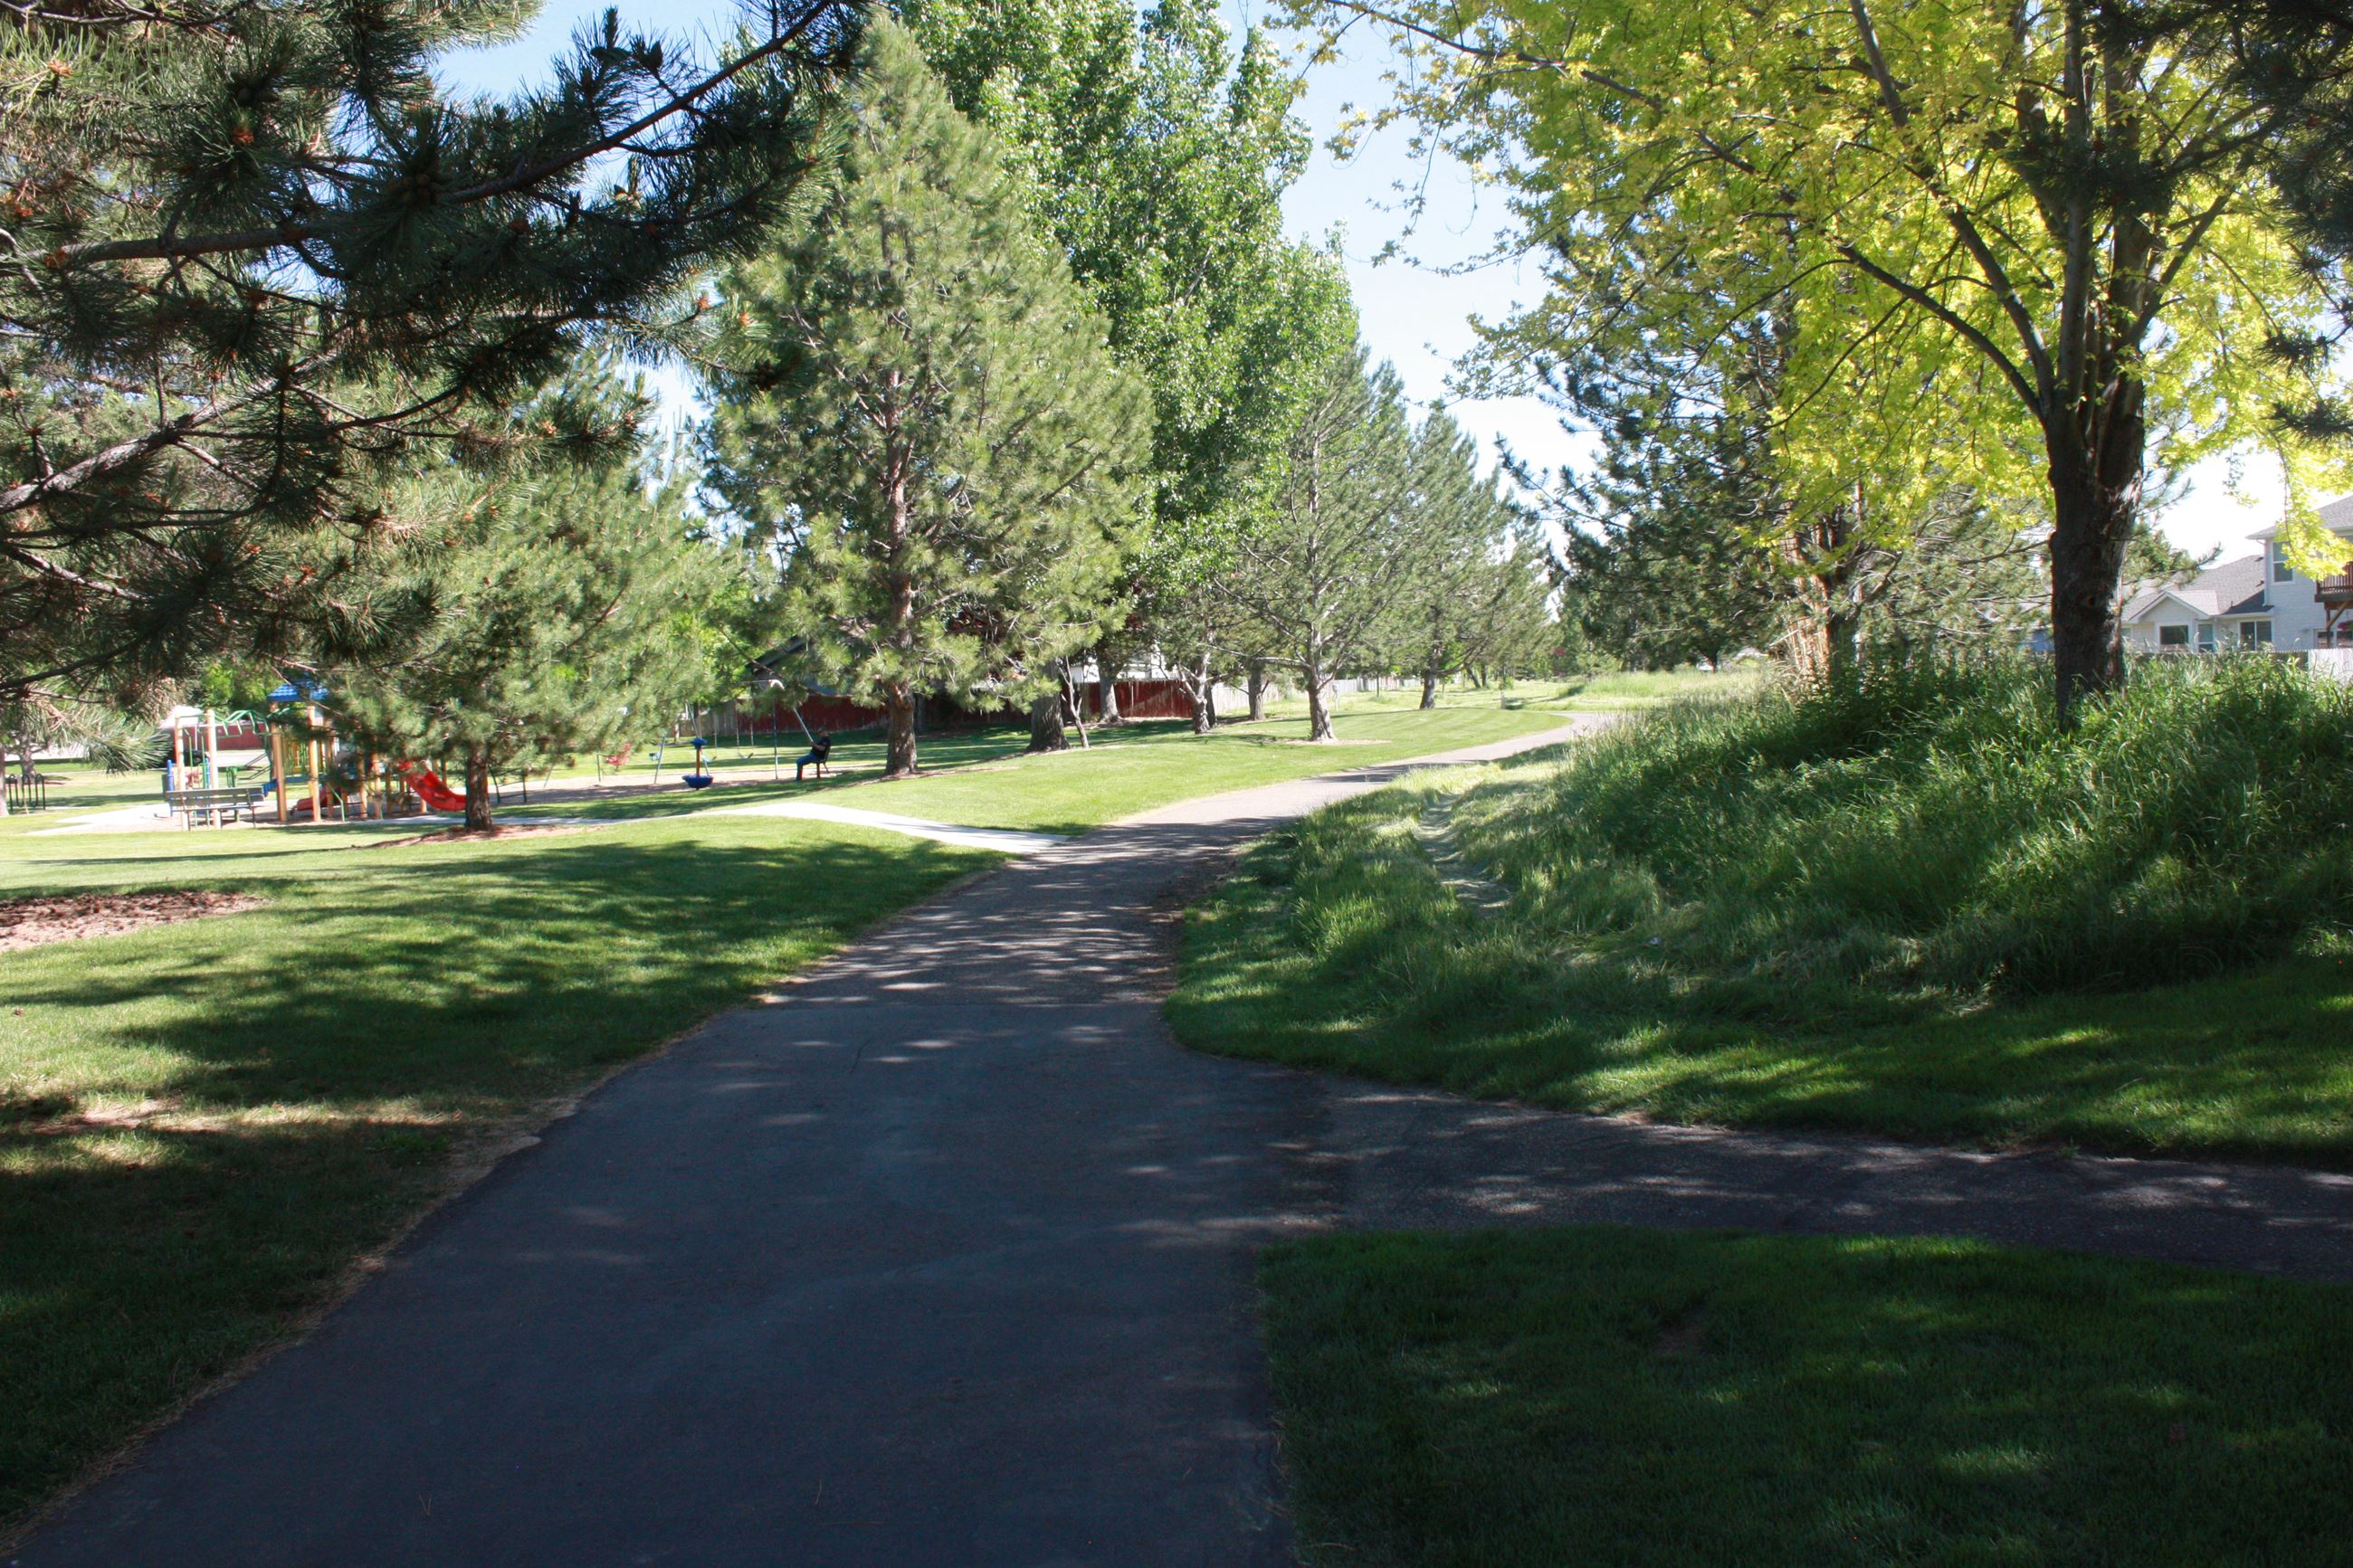 Paved pathway with grass and large trees on the side